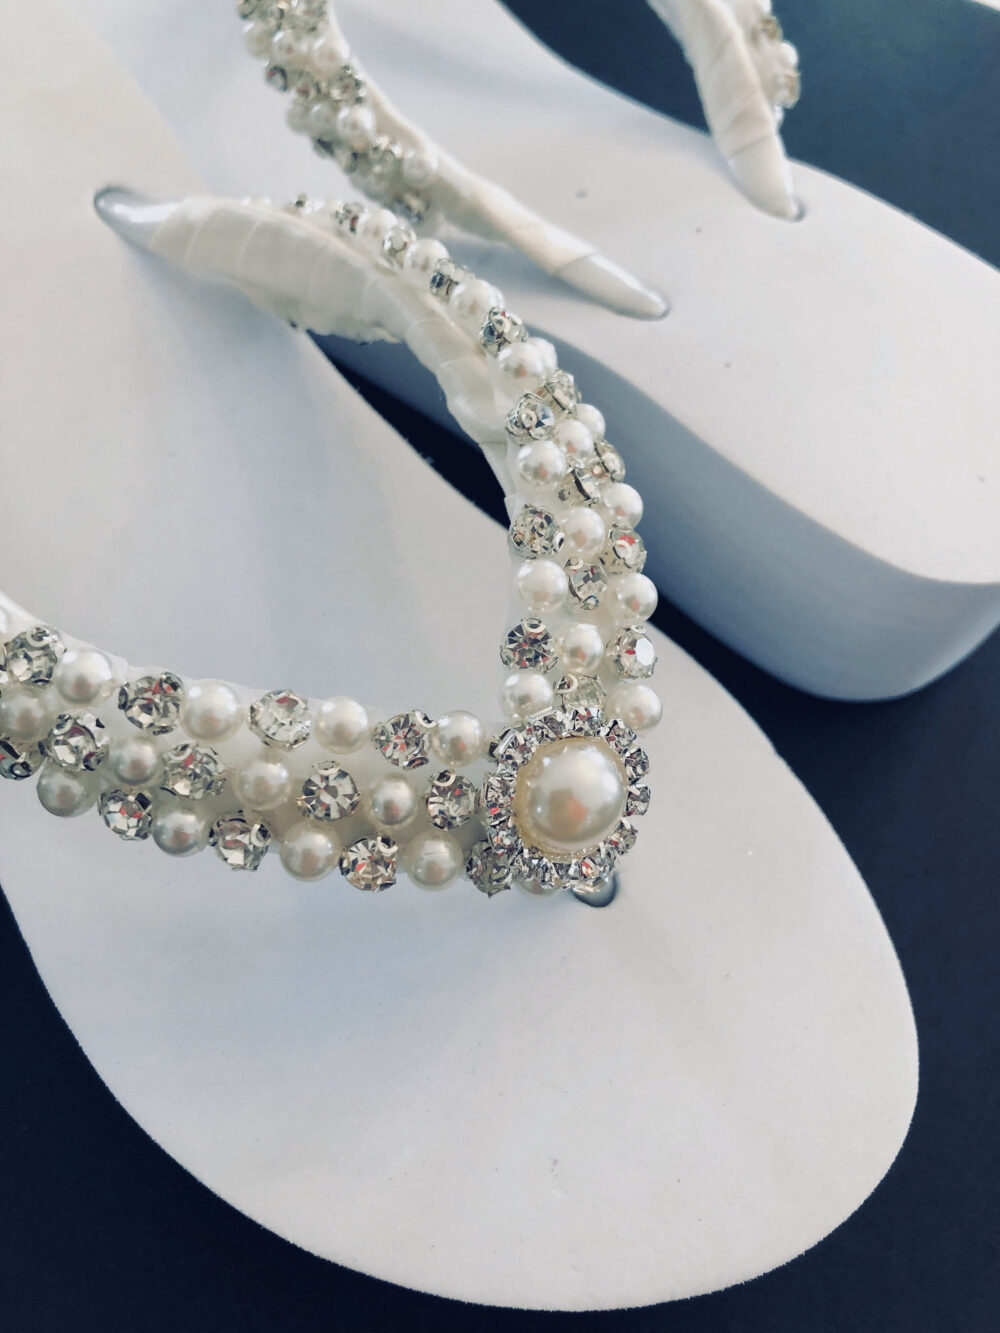 Beaded Bridal Shoe/White Rhinestone Wedged Shoe/Shoes For Beach Wedding/ Flip Flops. Wedding Shoes With Pearls. Custom Shoes